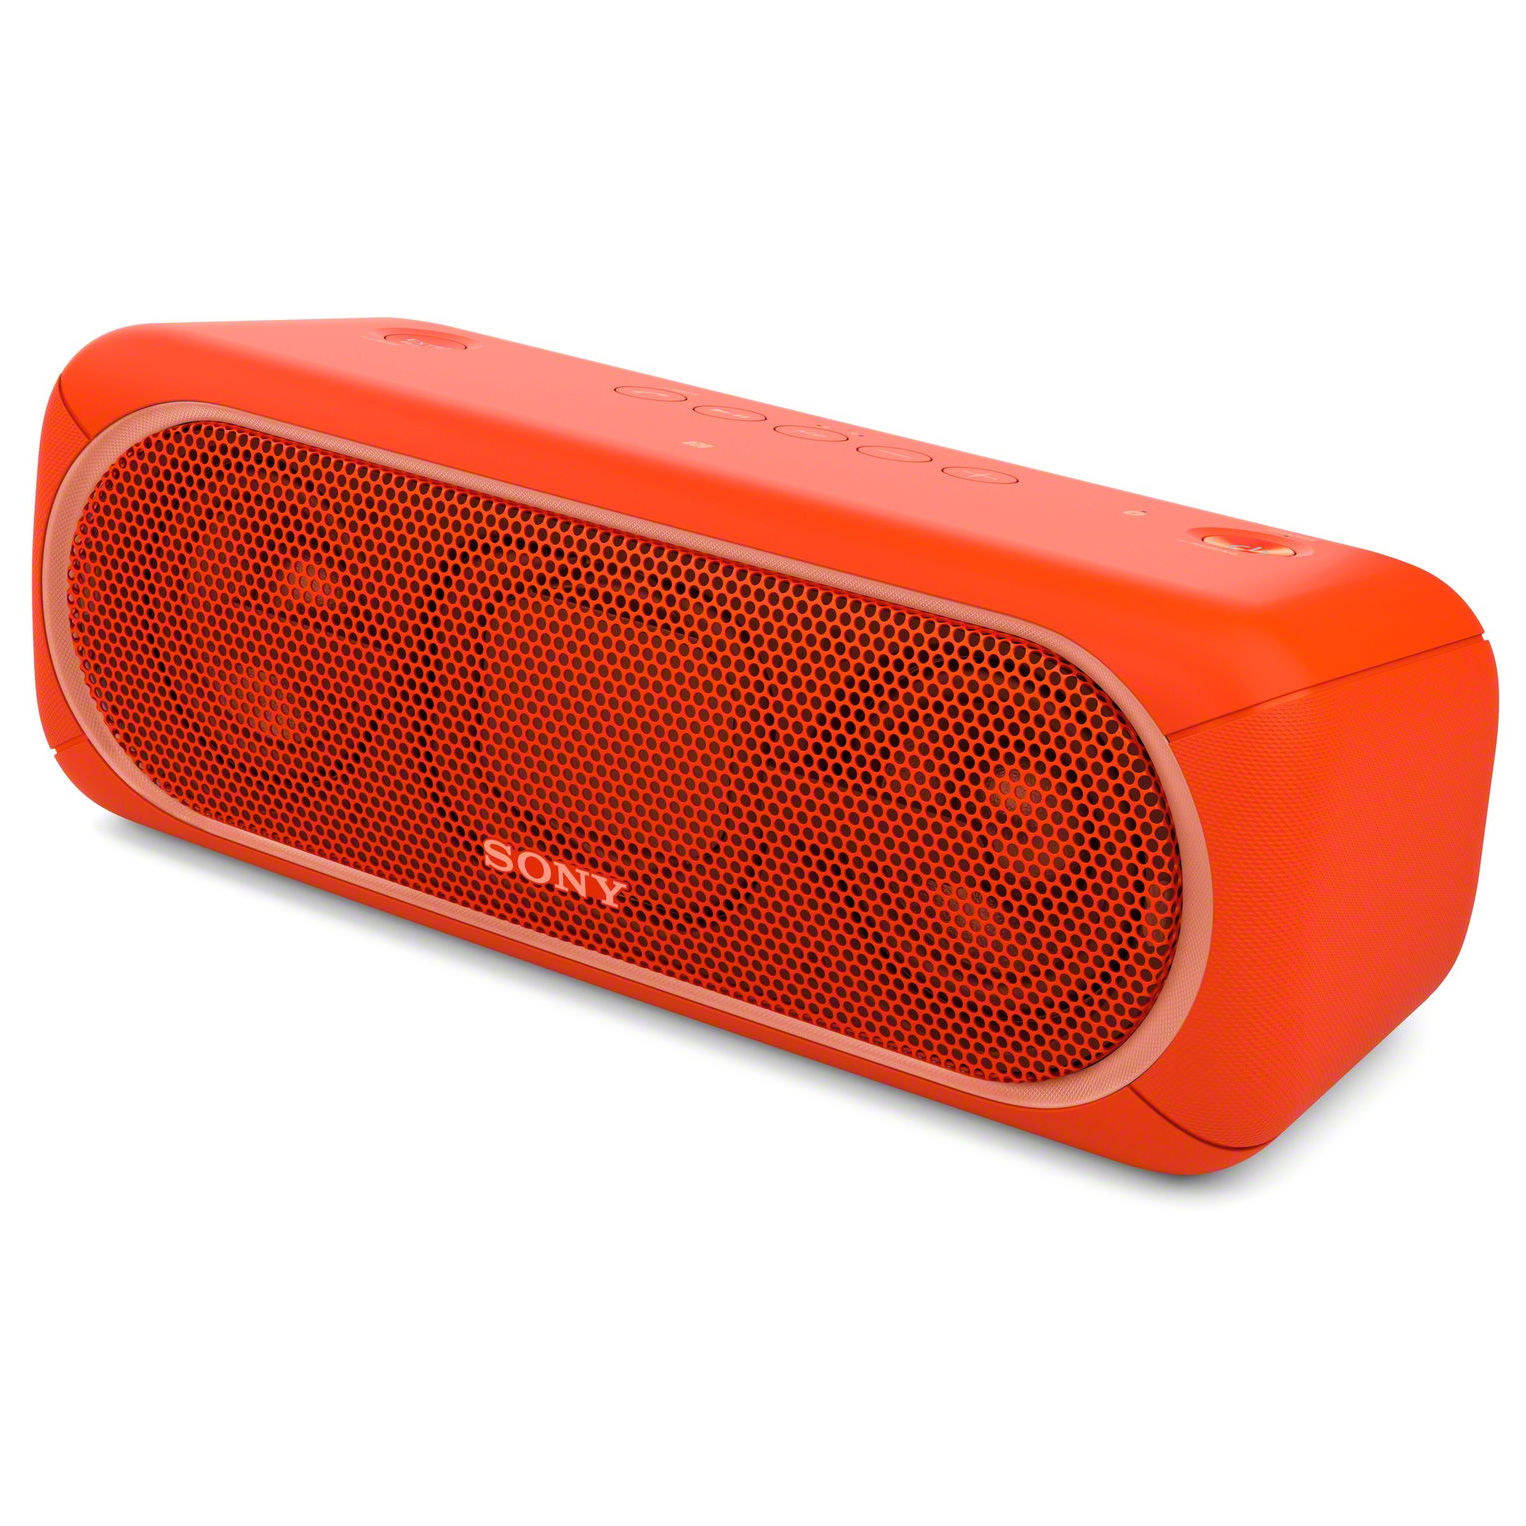 Jbl Pulse3 Waterproof Portable Bluetooth Speaker White Price Handsfree Super Bass J 344 Sony Srsxb40r For Parties Red